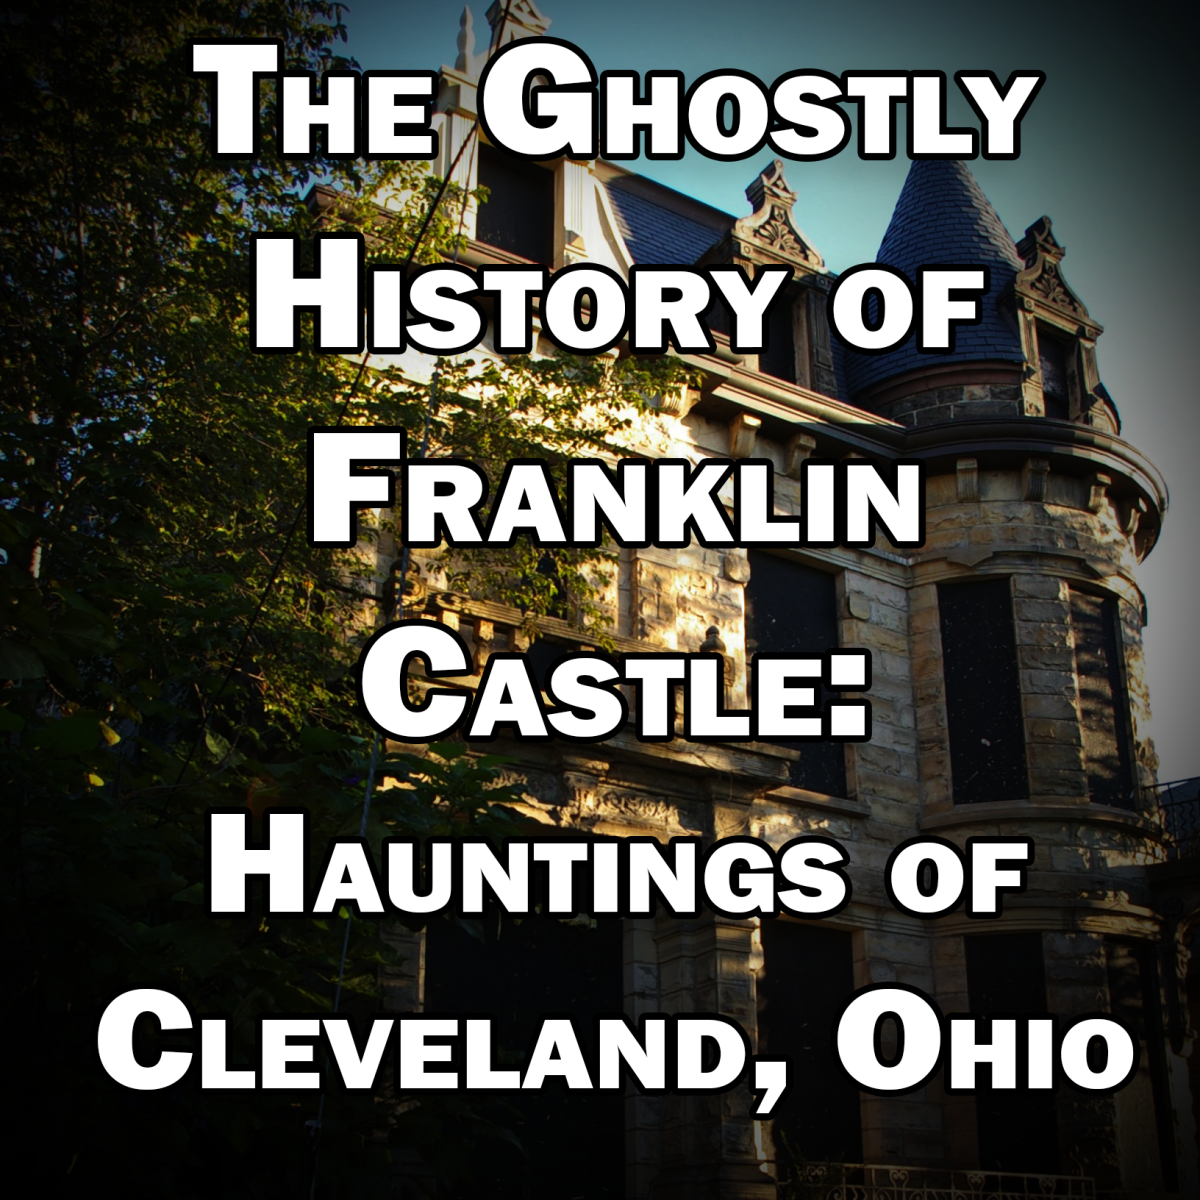 The Ghostly History of Franklin Castle: Hauntings of Cleveland, Ohio